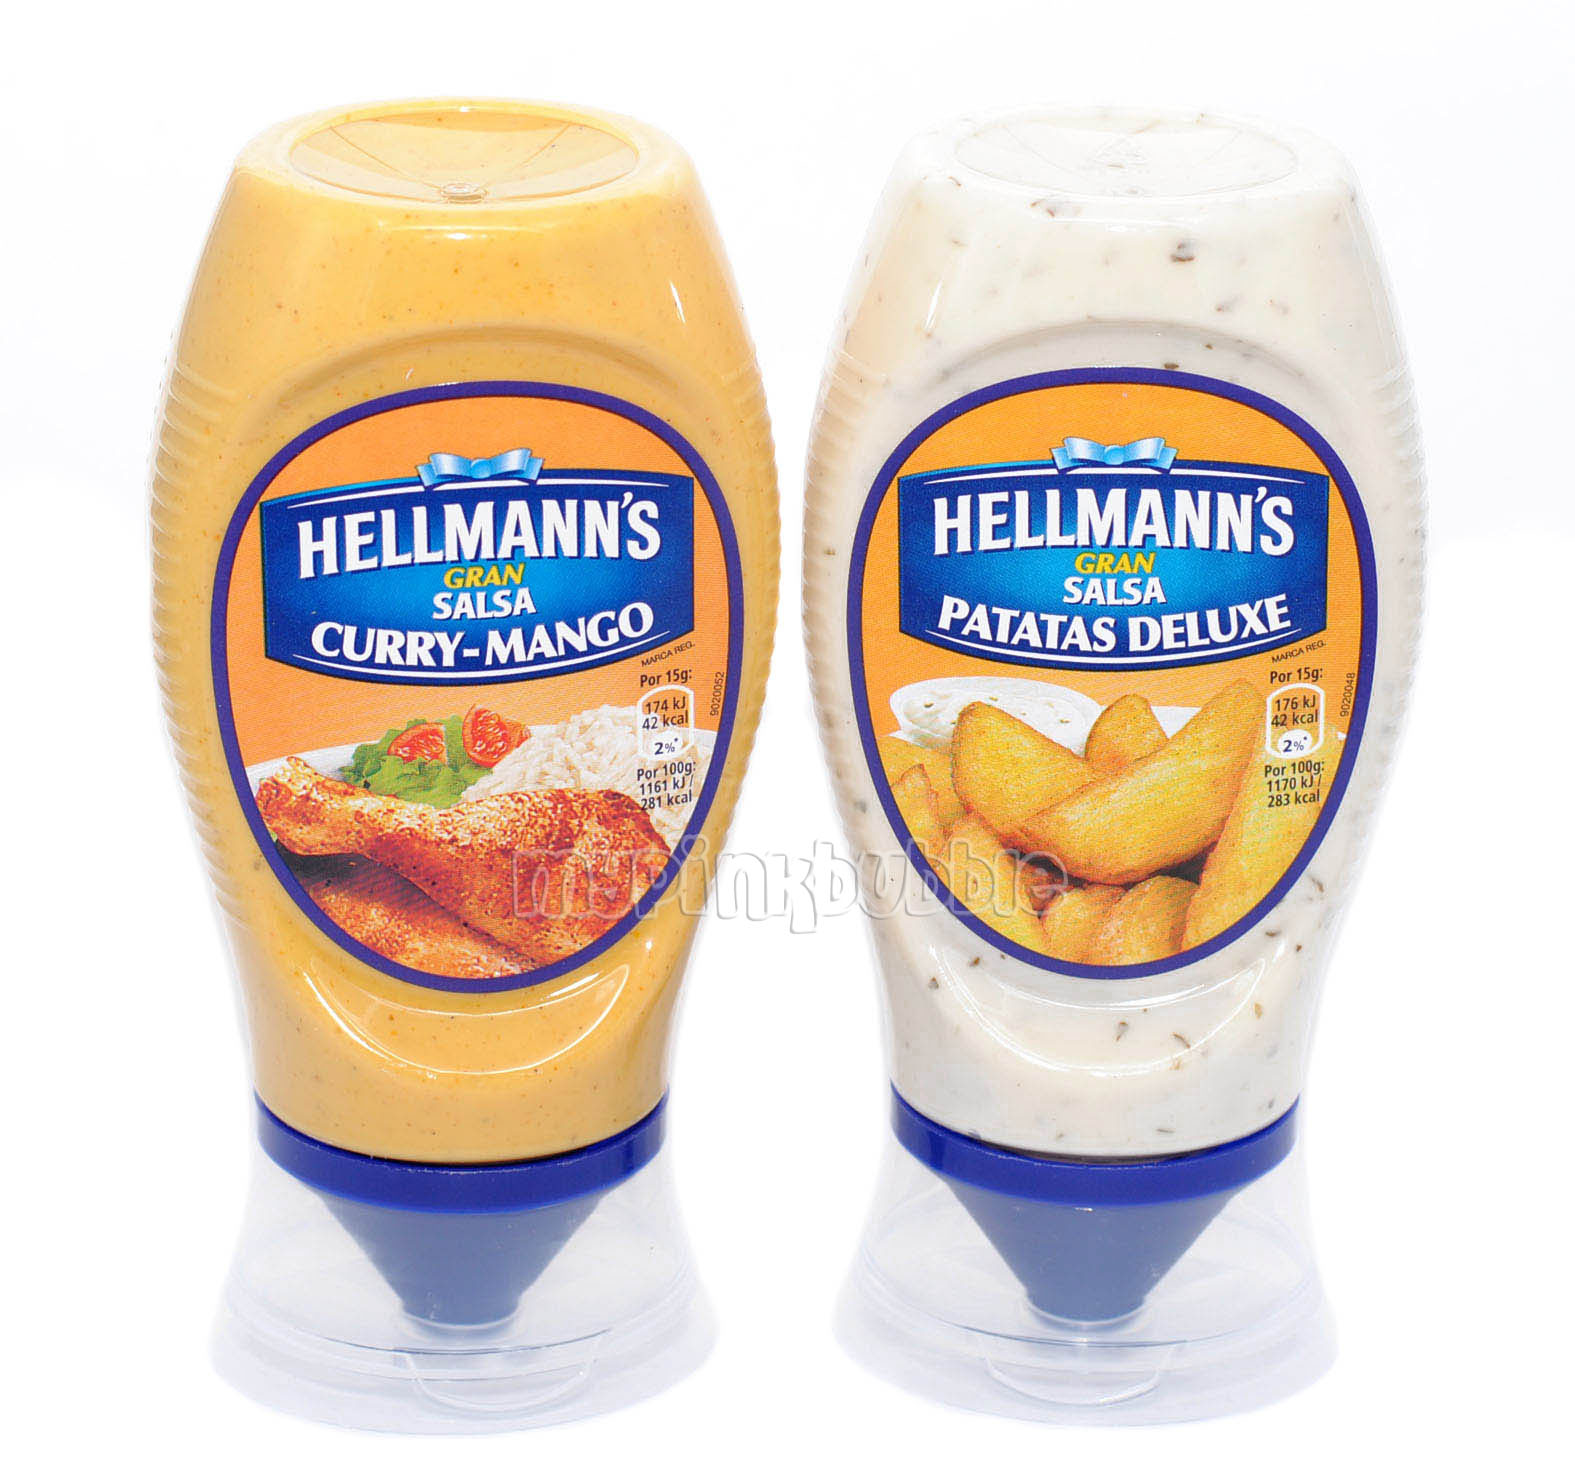 Hellmanns salsa patatas deluxe curry-mango